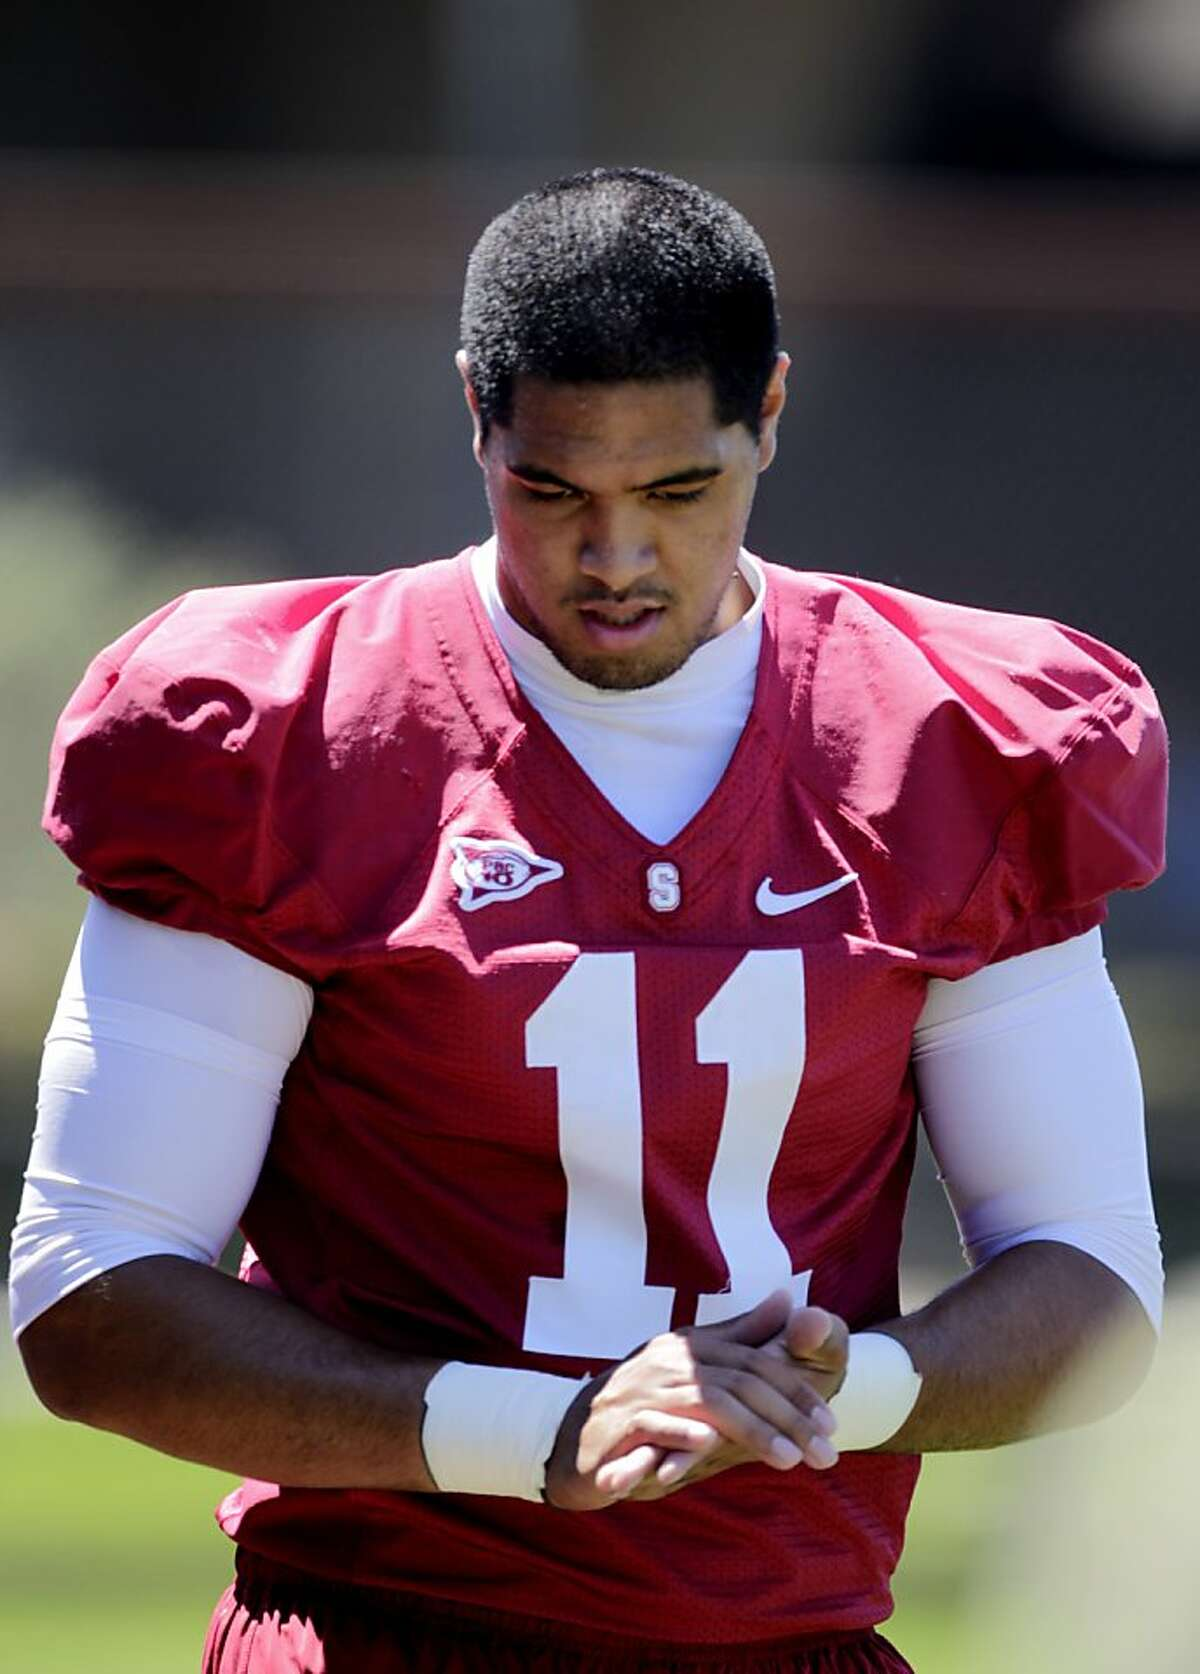 The Stanford's tight end Levine Toilolo prepares to take the field during practice at training camp, Monday August 8, 2011, in Stanford Calif.